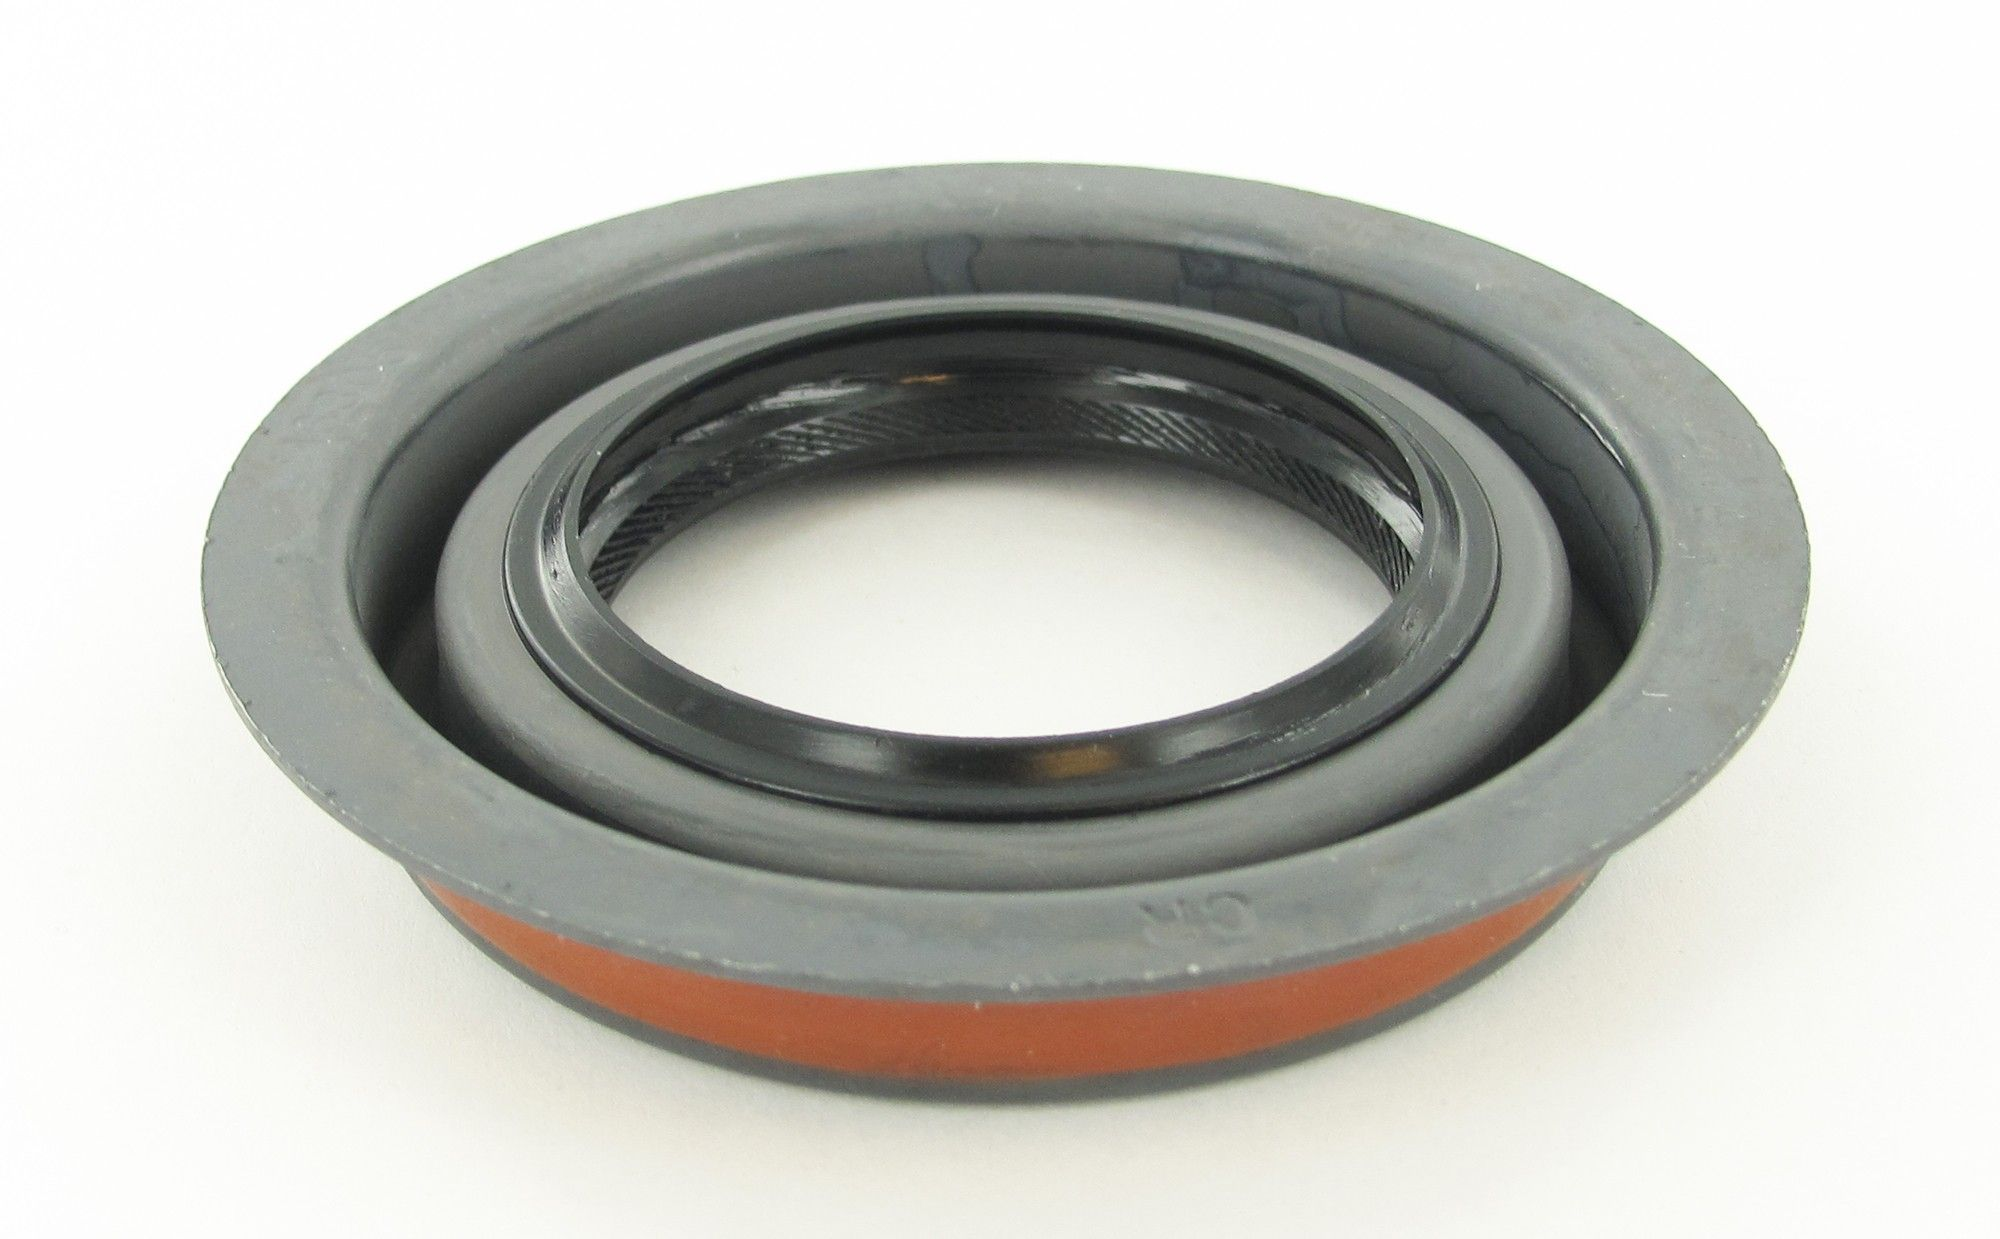 Dodge Ram 1500 Differential Pinion Seal Replacement Mopar National Diagram 1994 Rear Skf 16805 1688 Sh 7250 8250 8375 Ring Gears